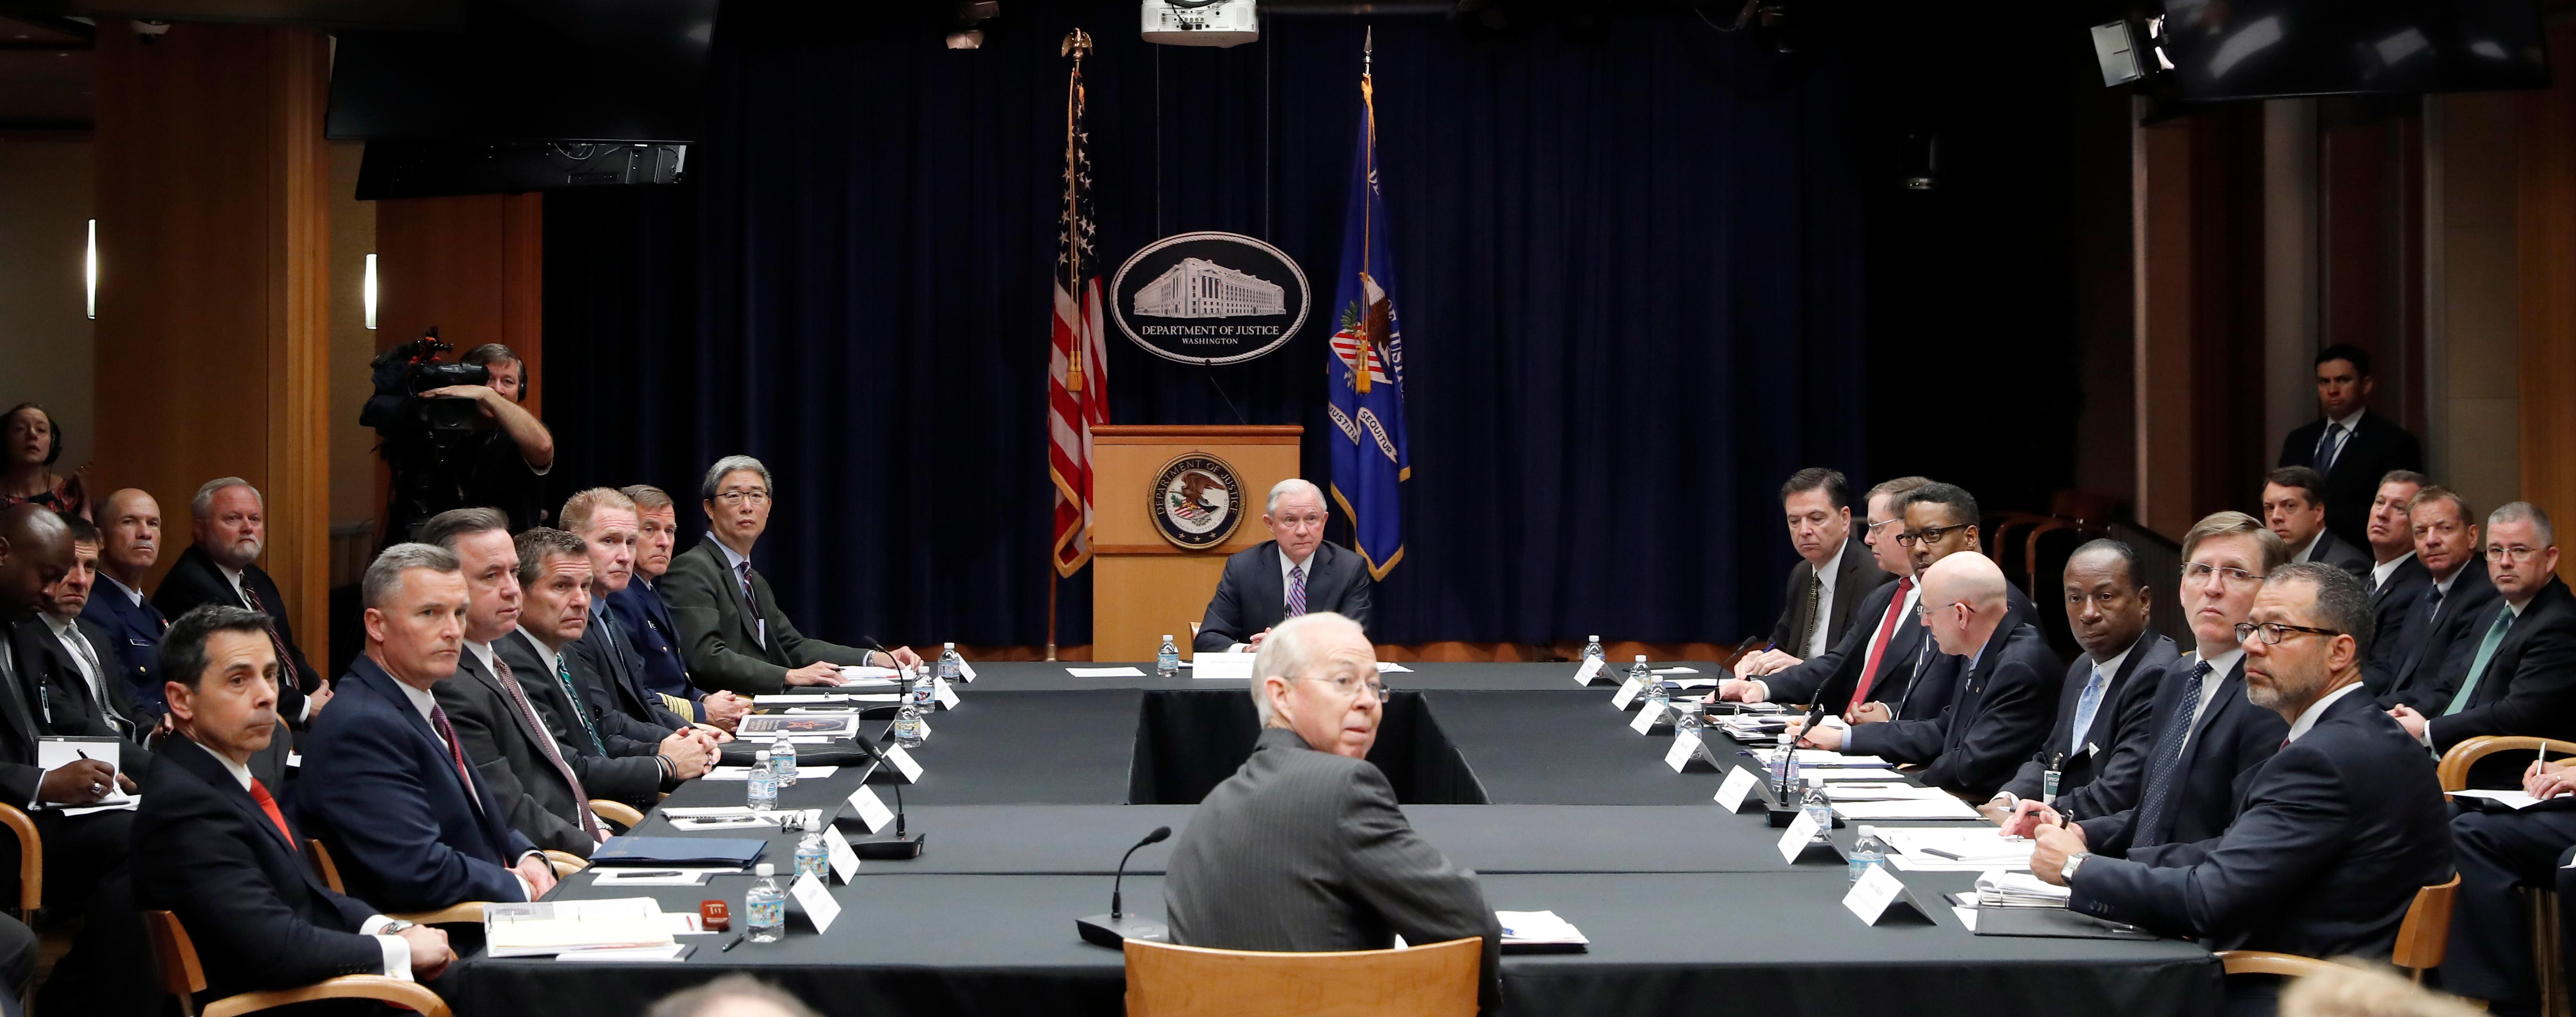 Attorney General Jeff Sessions, seated at the head of the table, listens to a reporter's question before a meeting of the Attorney General's Organized Crime Council and Organized Crime Drug Enforcement Task Forces (OCDETF) Executive Committee to discuss implementation of the President's Executive Order 13773, Tuesday, April 18, 2017, at the Justice Department in Washington. (AP Photo/Alex Brandon)